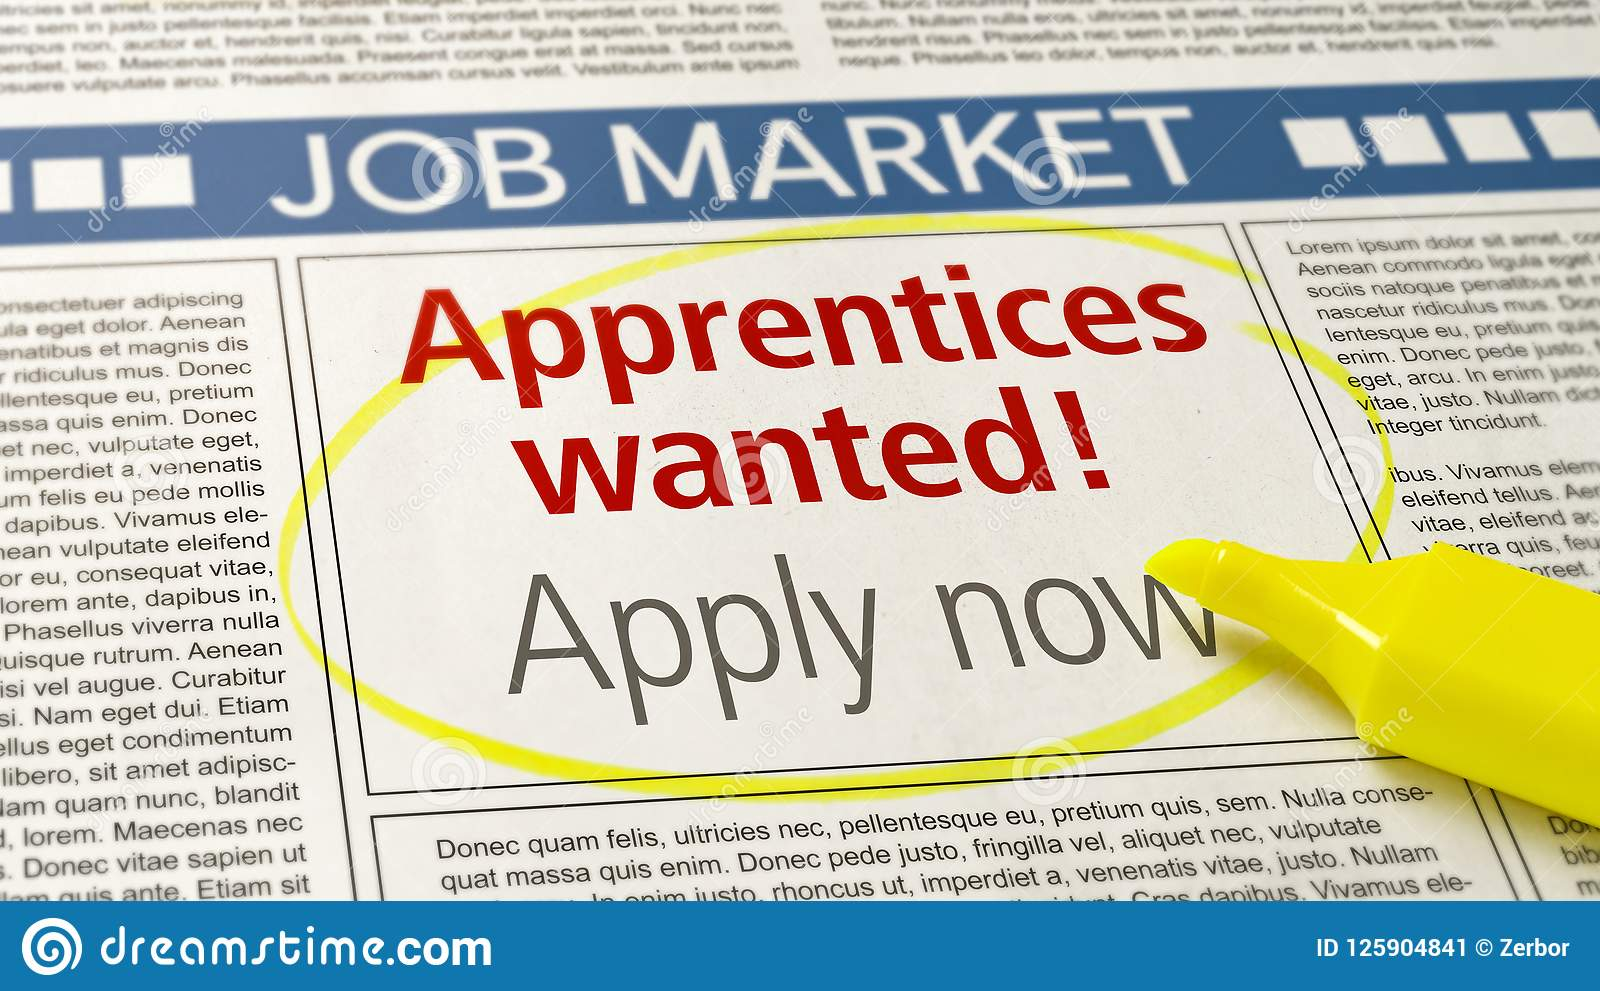 Job Ad In A Newspaper - Apprentices Wanted Stock Image